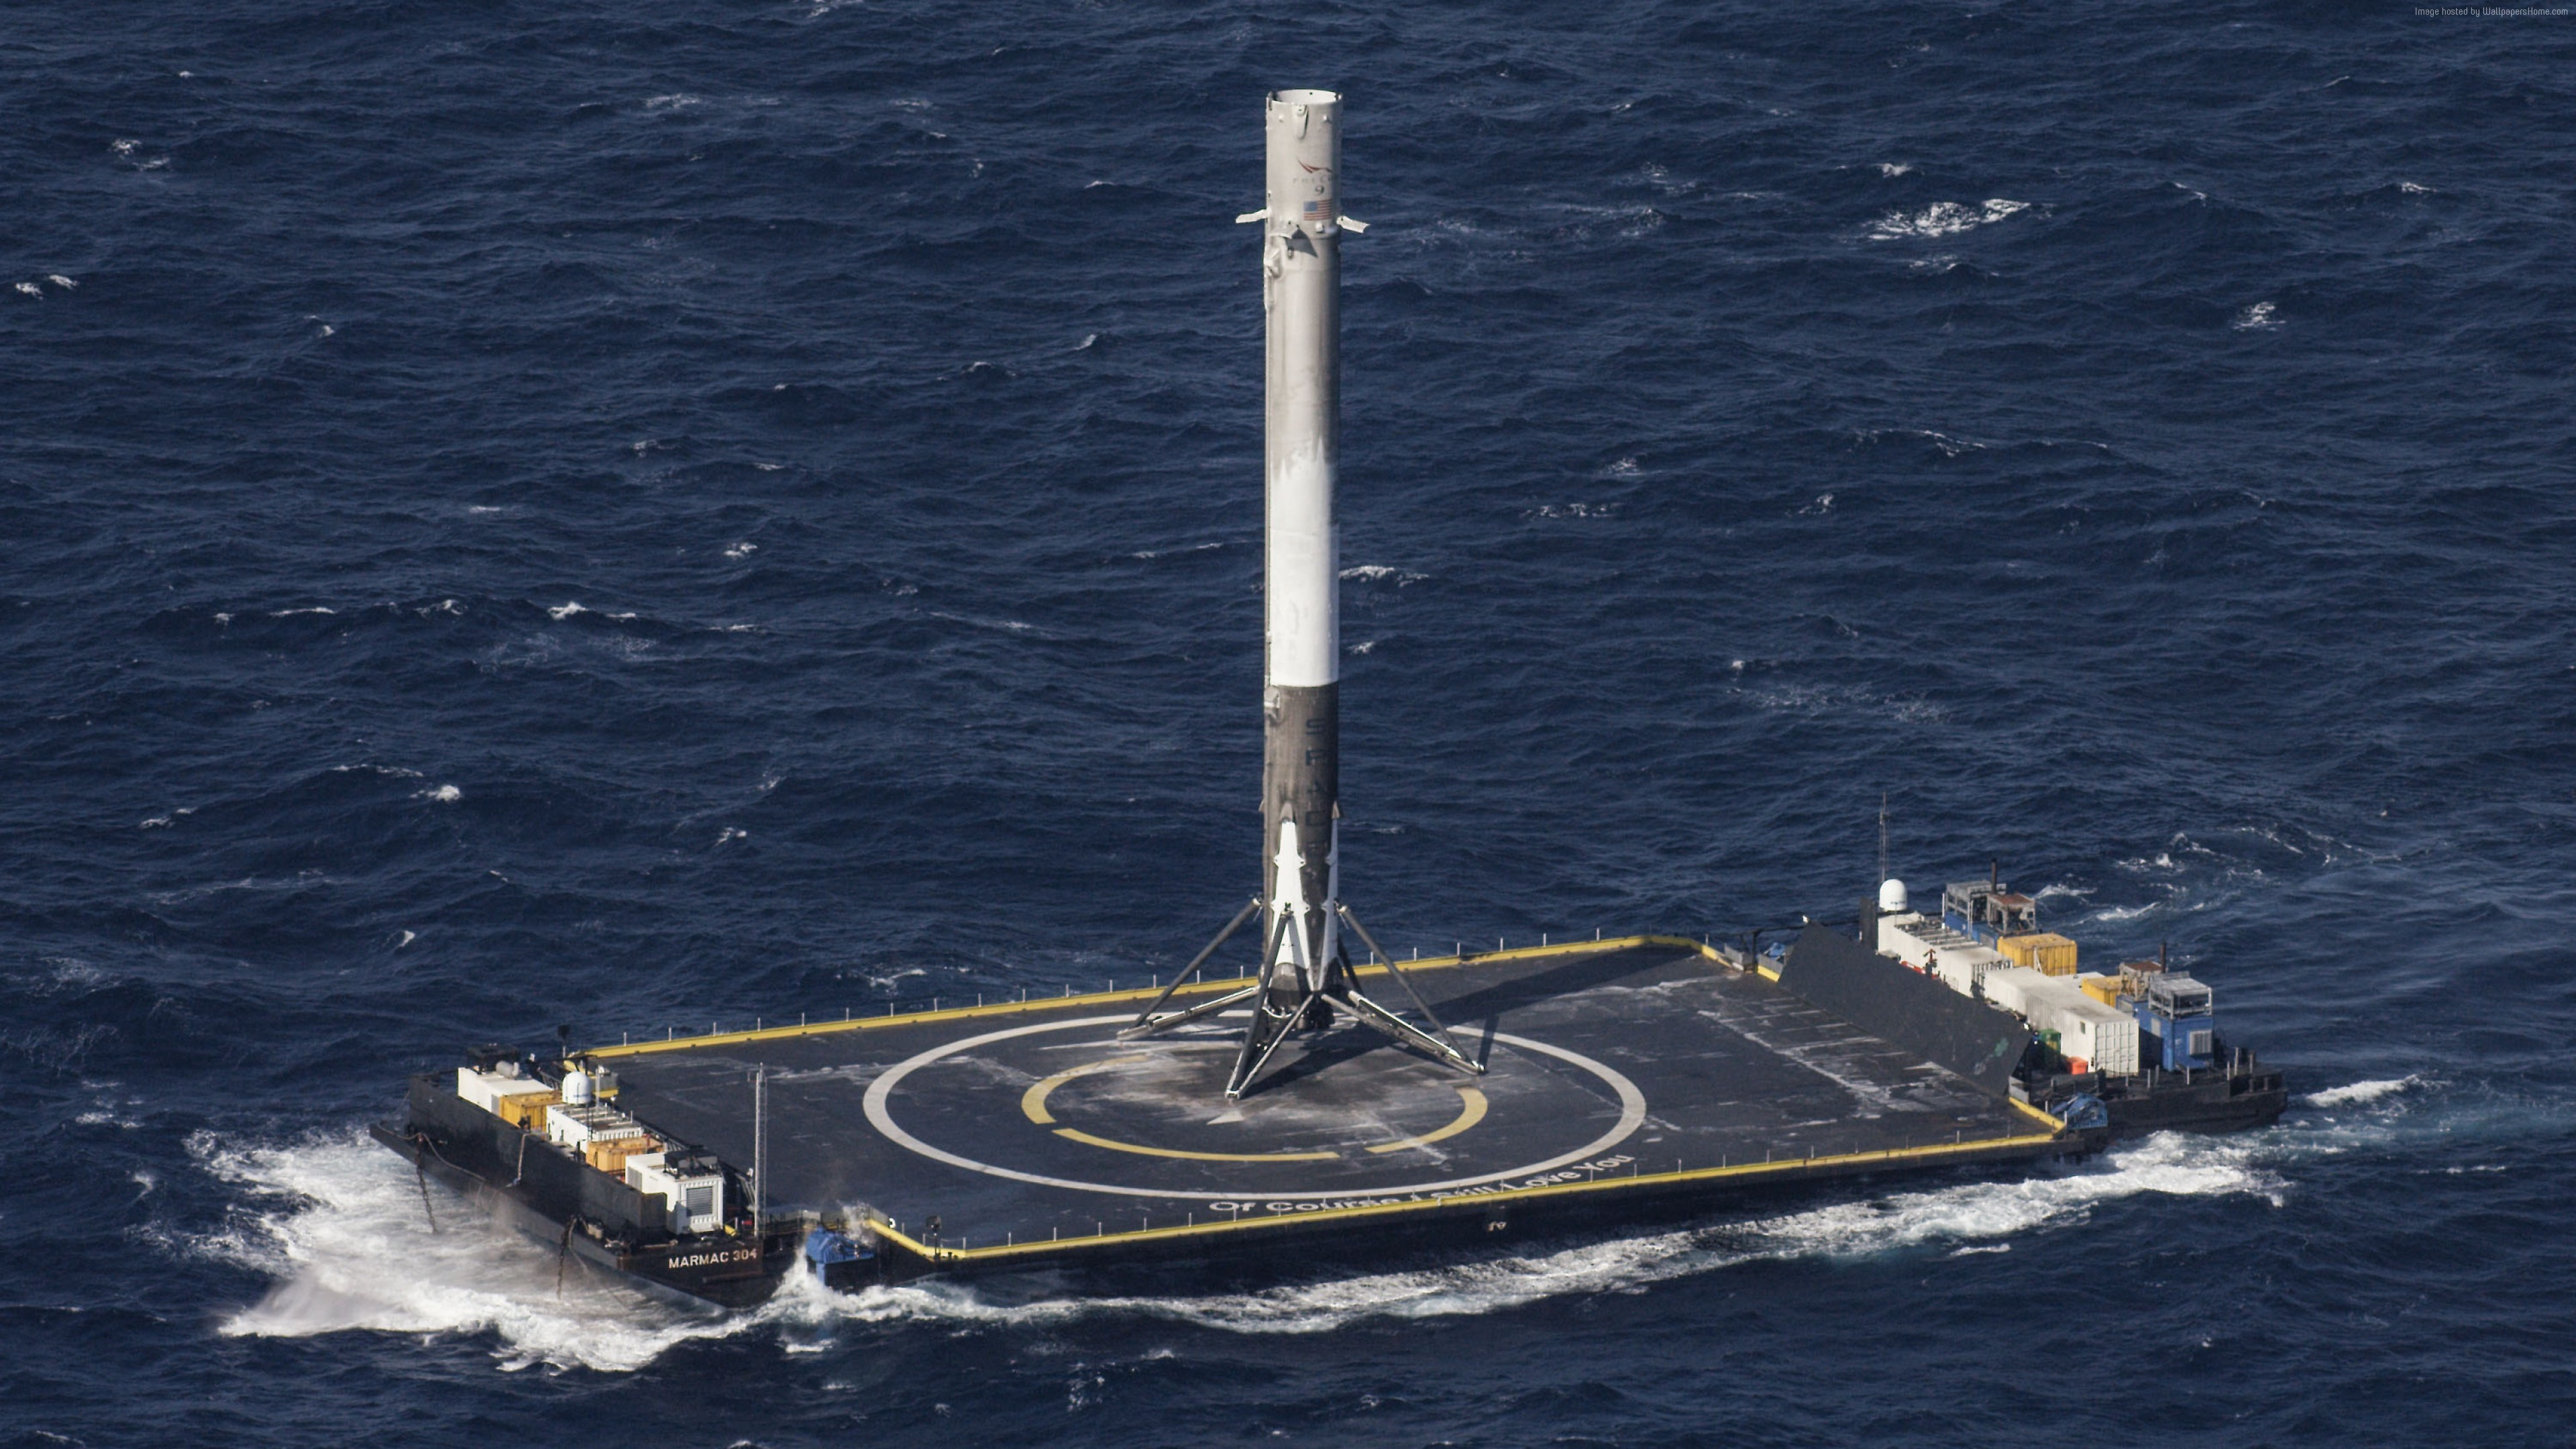 Wallpaper SpaceX, ship, sea, platform, rocket, Space